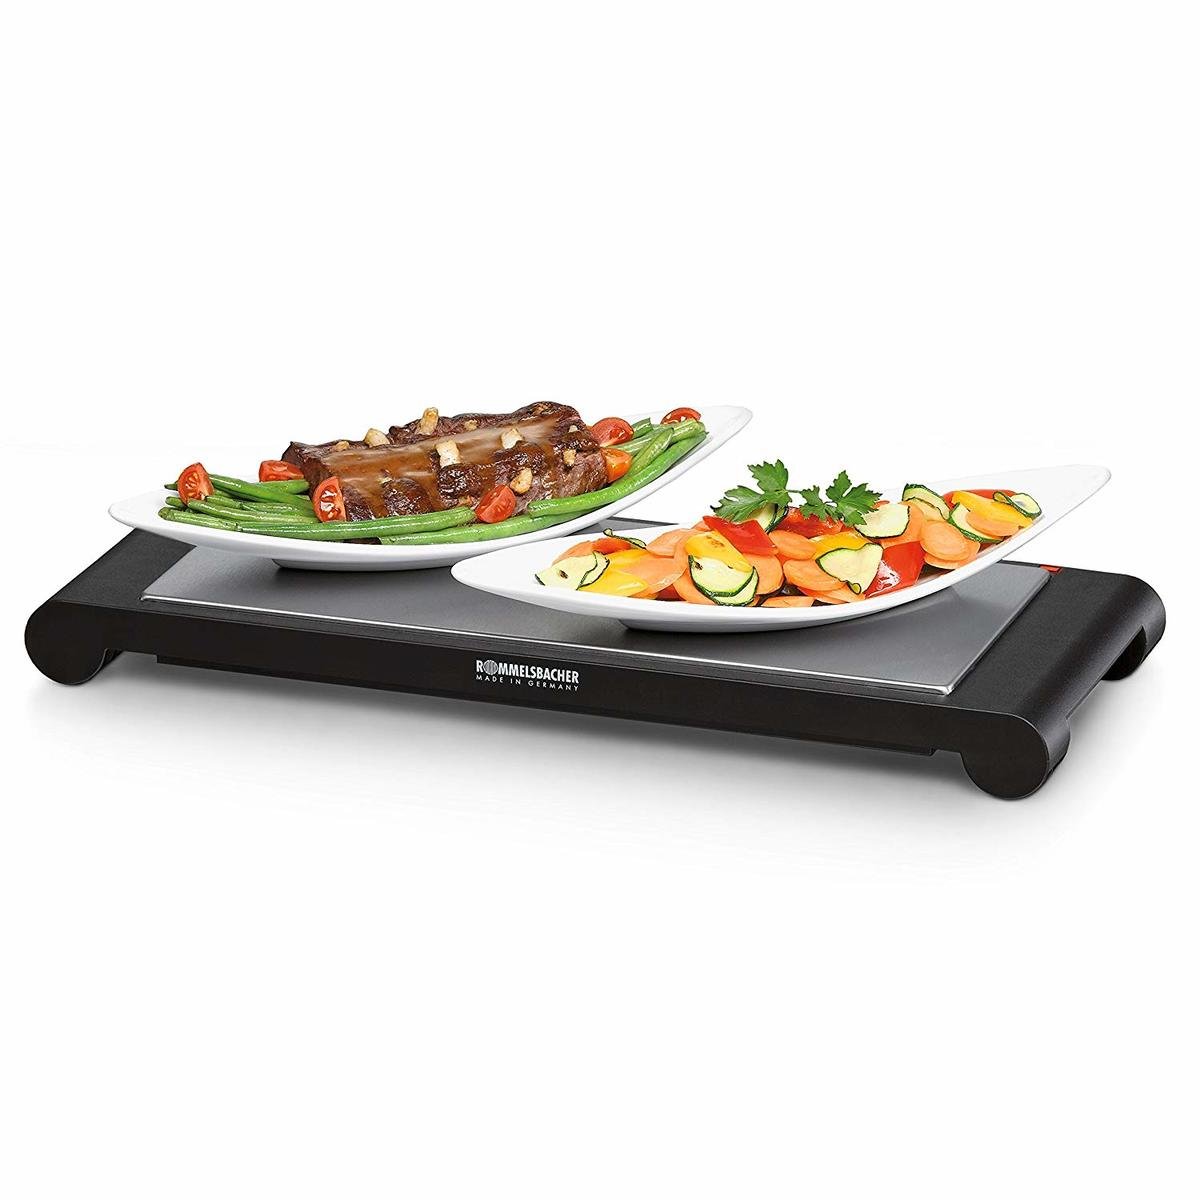 HEAT STORING WARMING TRAY (Made in Germany)